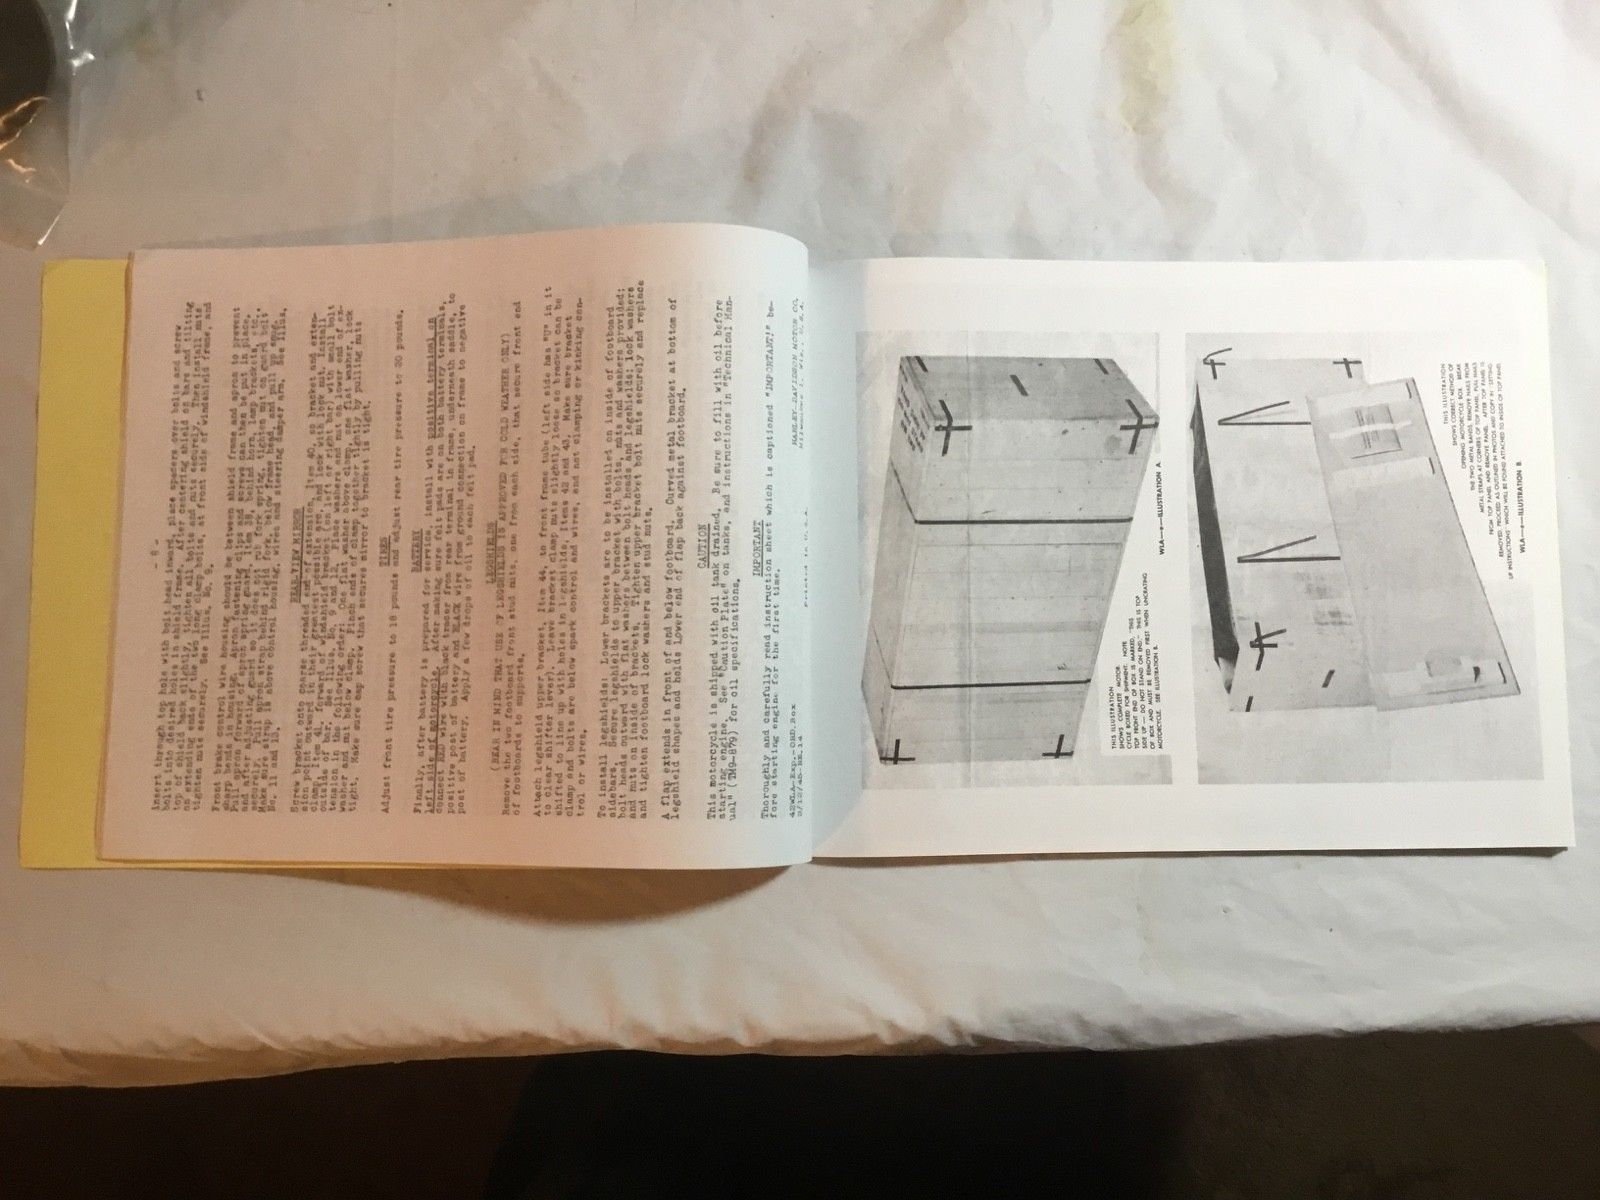 harley fxr jiffy stand instructions